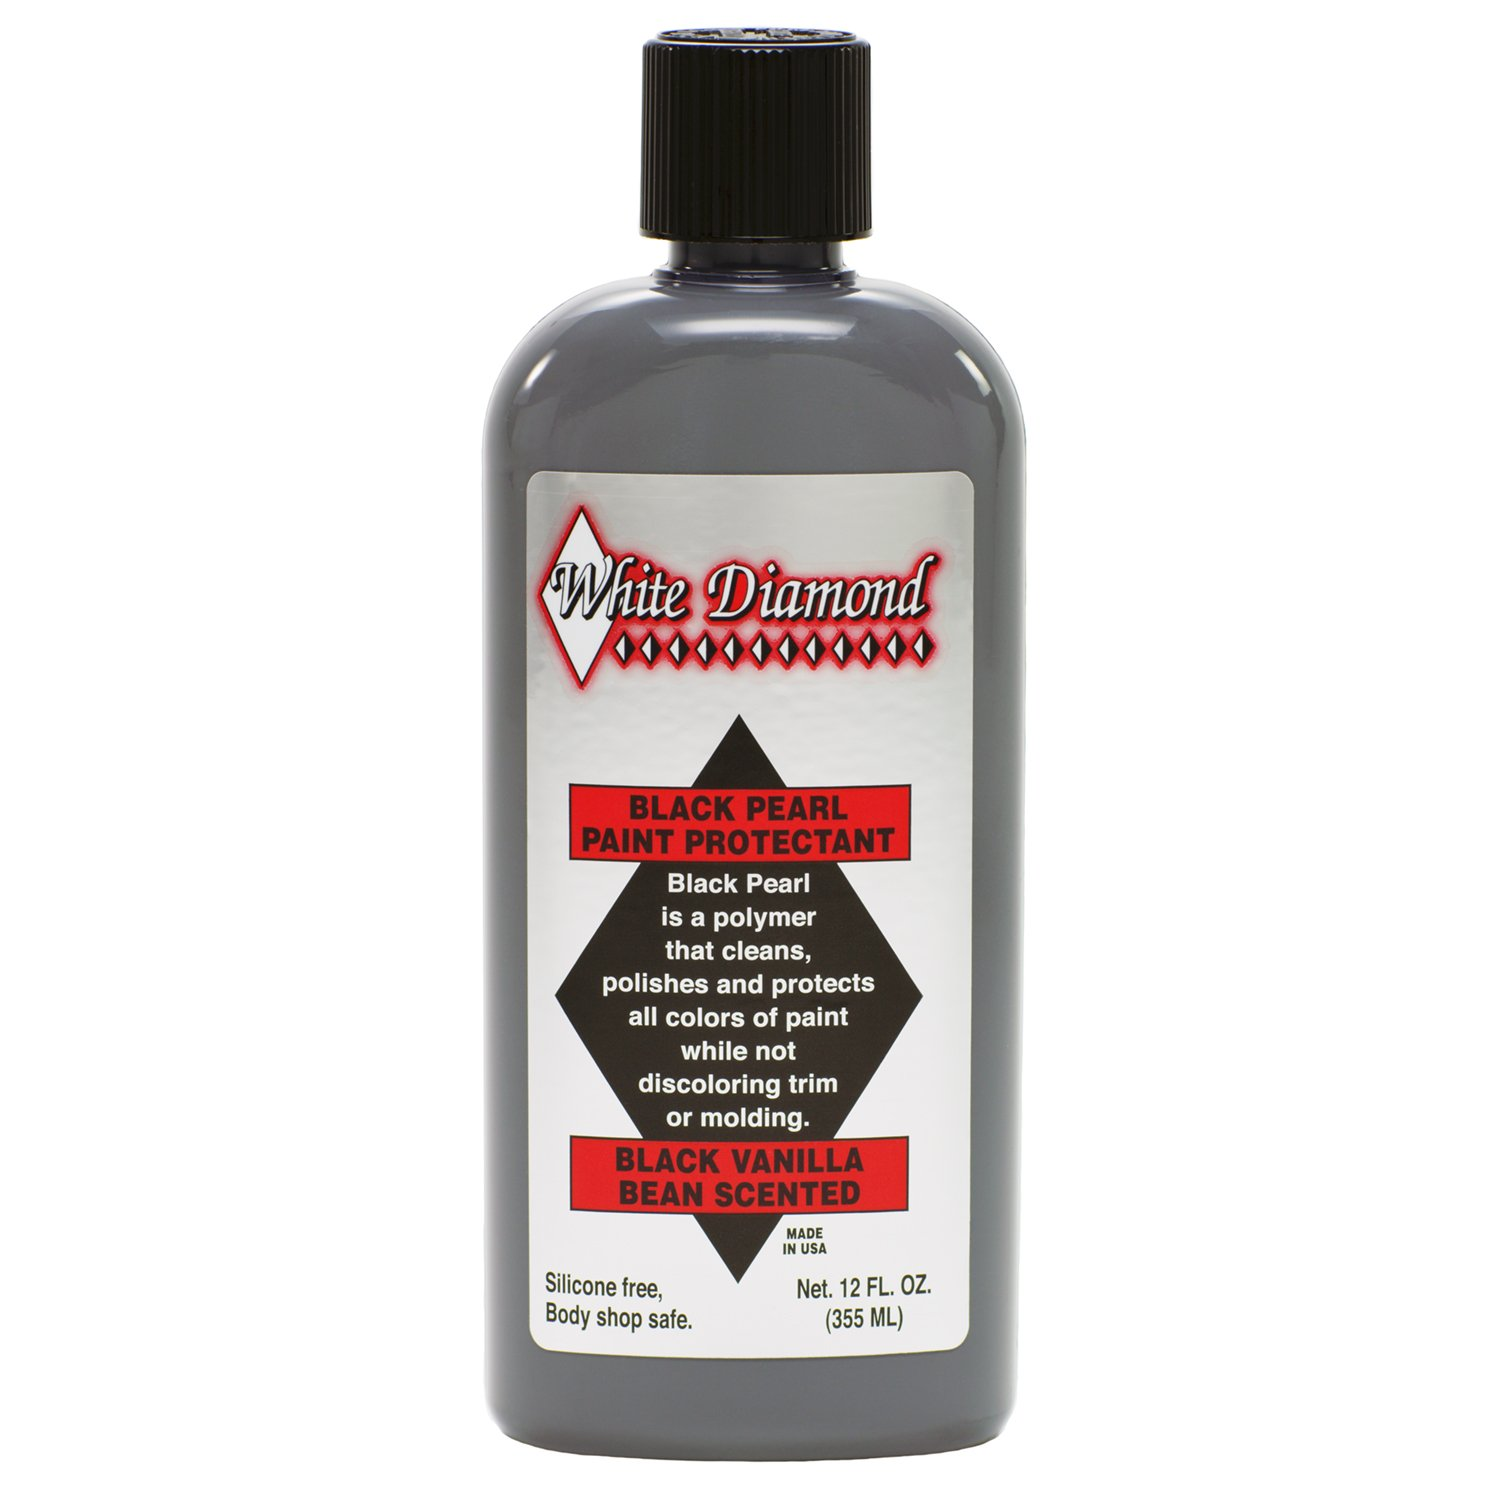 White Diamond Black Pearl Paint Protectant is a Polymer That Cleans, Polishes and Protects of Paint While not discoloring Trim or molding. Can Even Apply in Direct Sunlight! Schultz Laboratories Mfr. Inc.